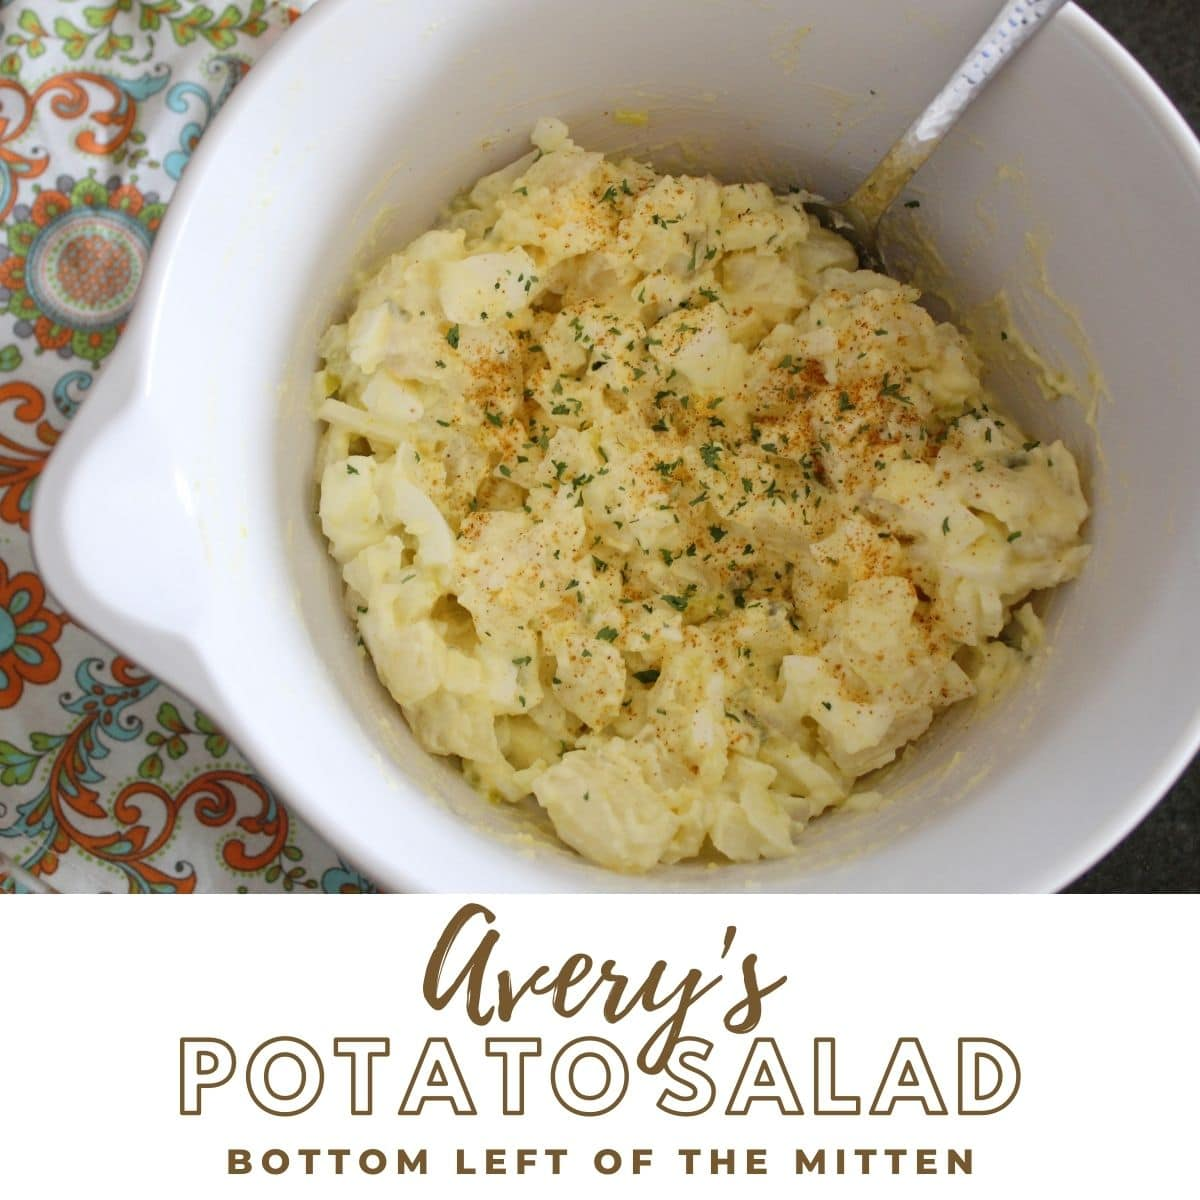 collage of image of potato salad recipe with descriptive text overlay.